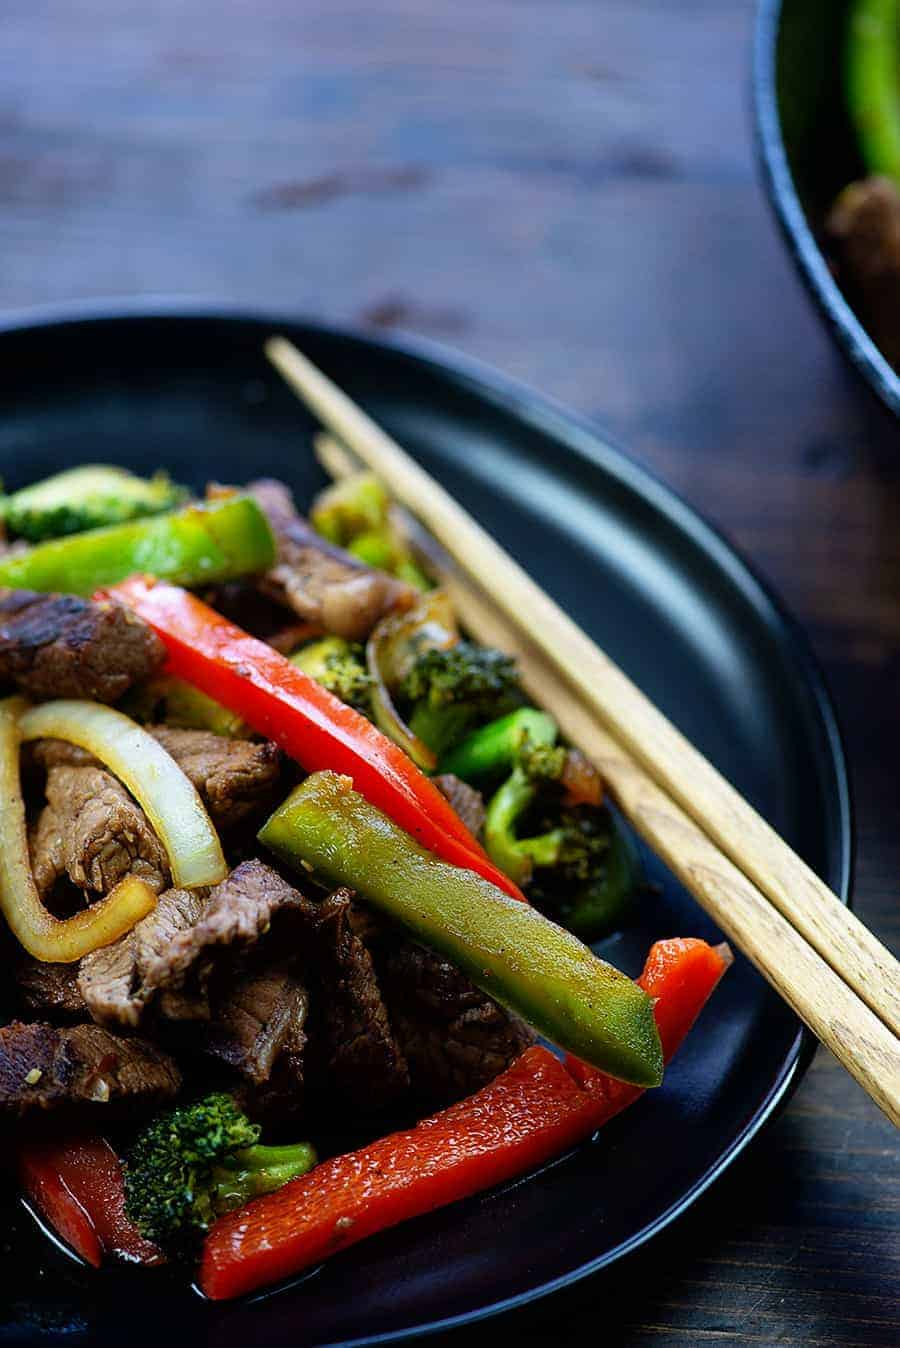 Low carb stir fry recipe! This beef stir fry is made with an easy homemade stir fry sauce! #recipes #lowcarb #keto #steak